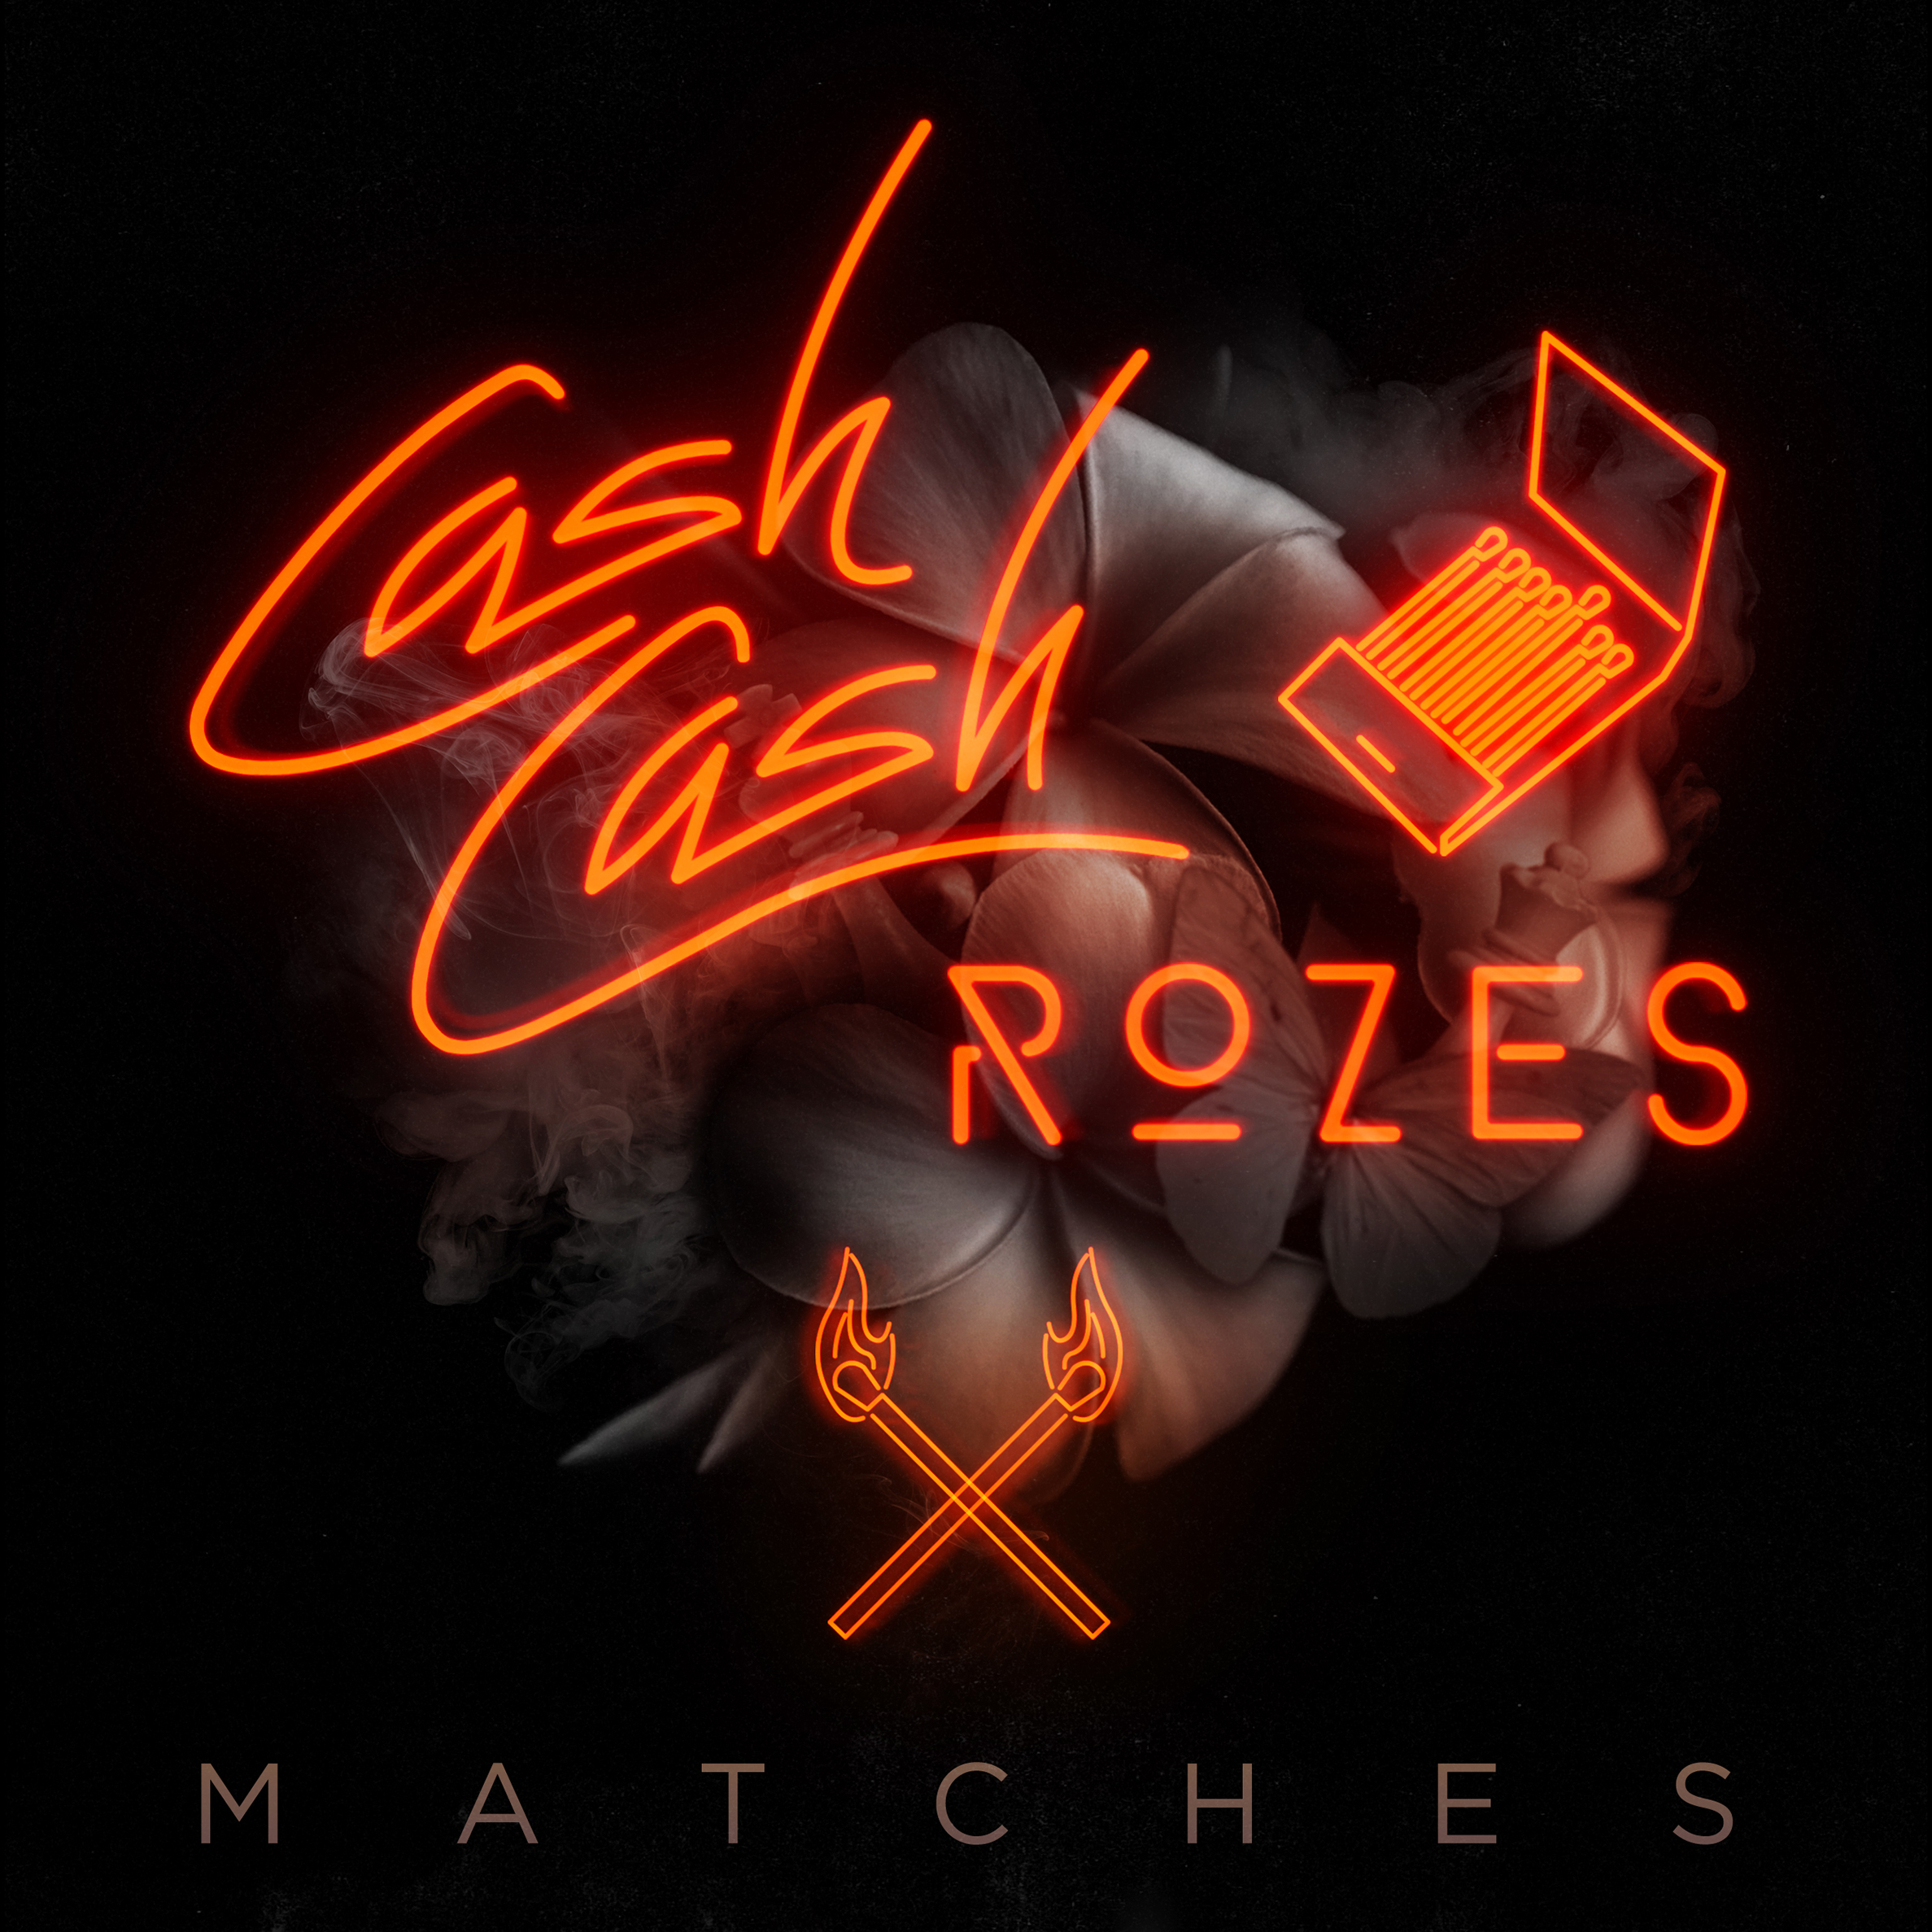 Cash Cash and Rozes - Matches single art